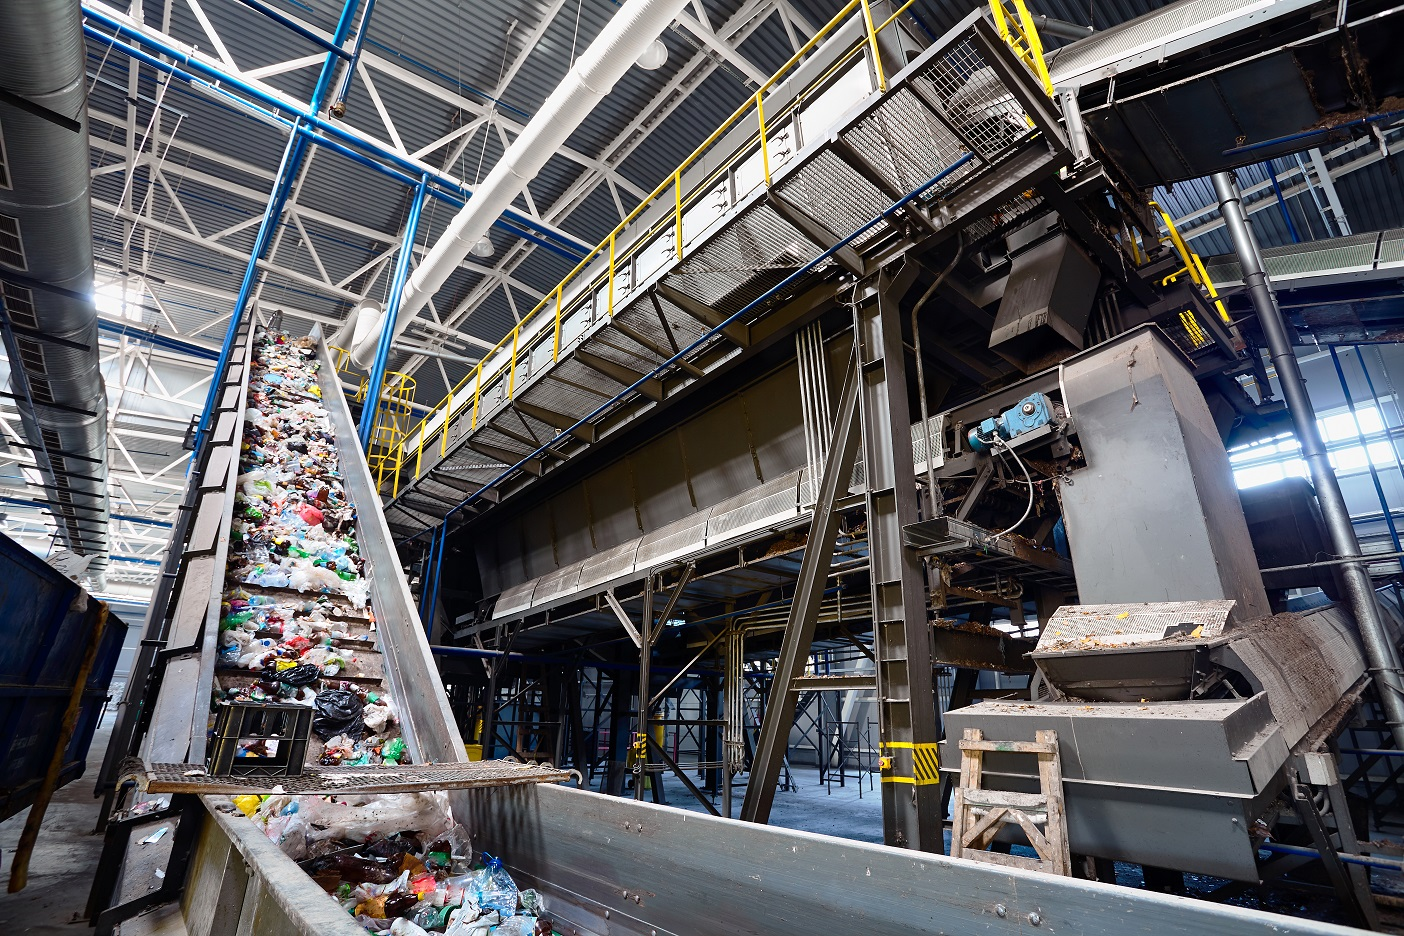 Dow, LyondellBasell and NOVA Chemicals invest in Scalable Recycling Technologies